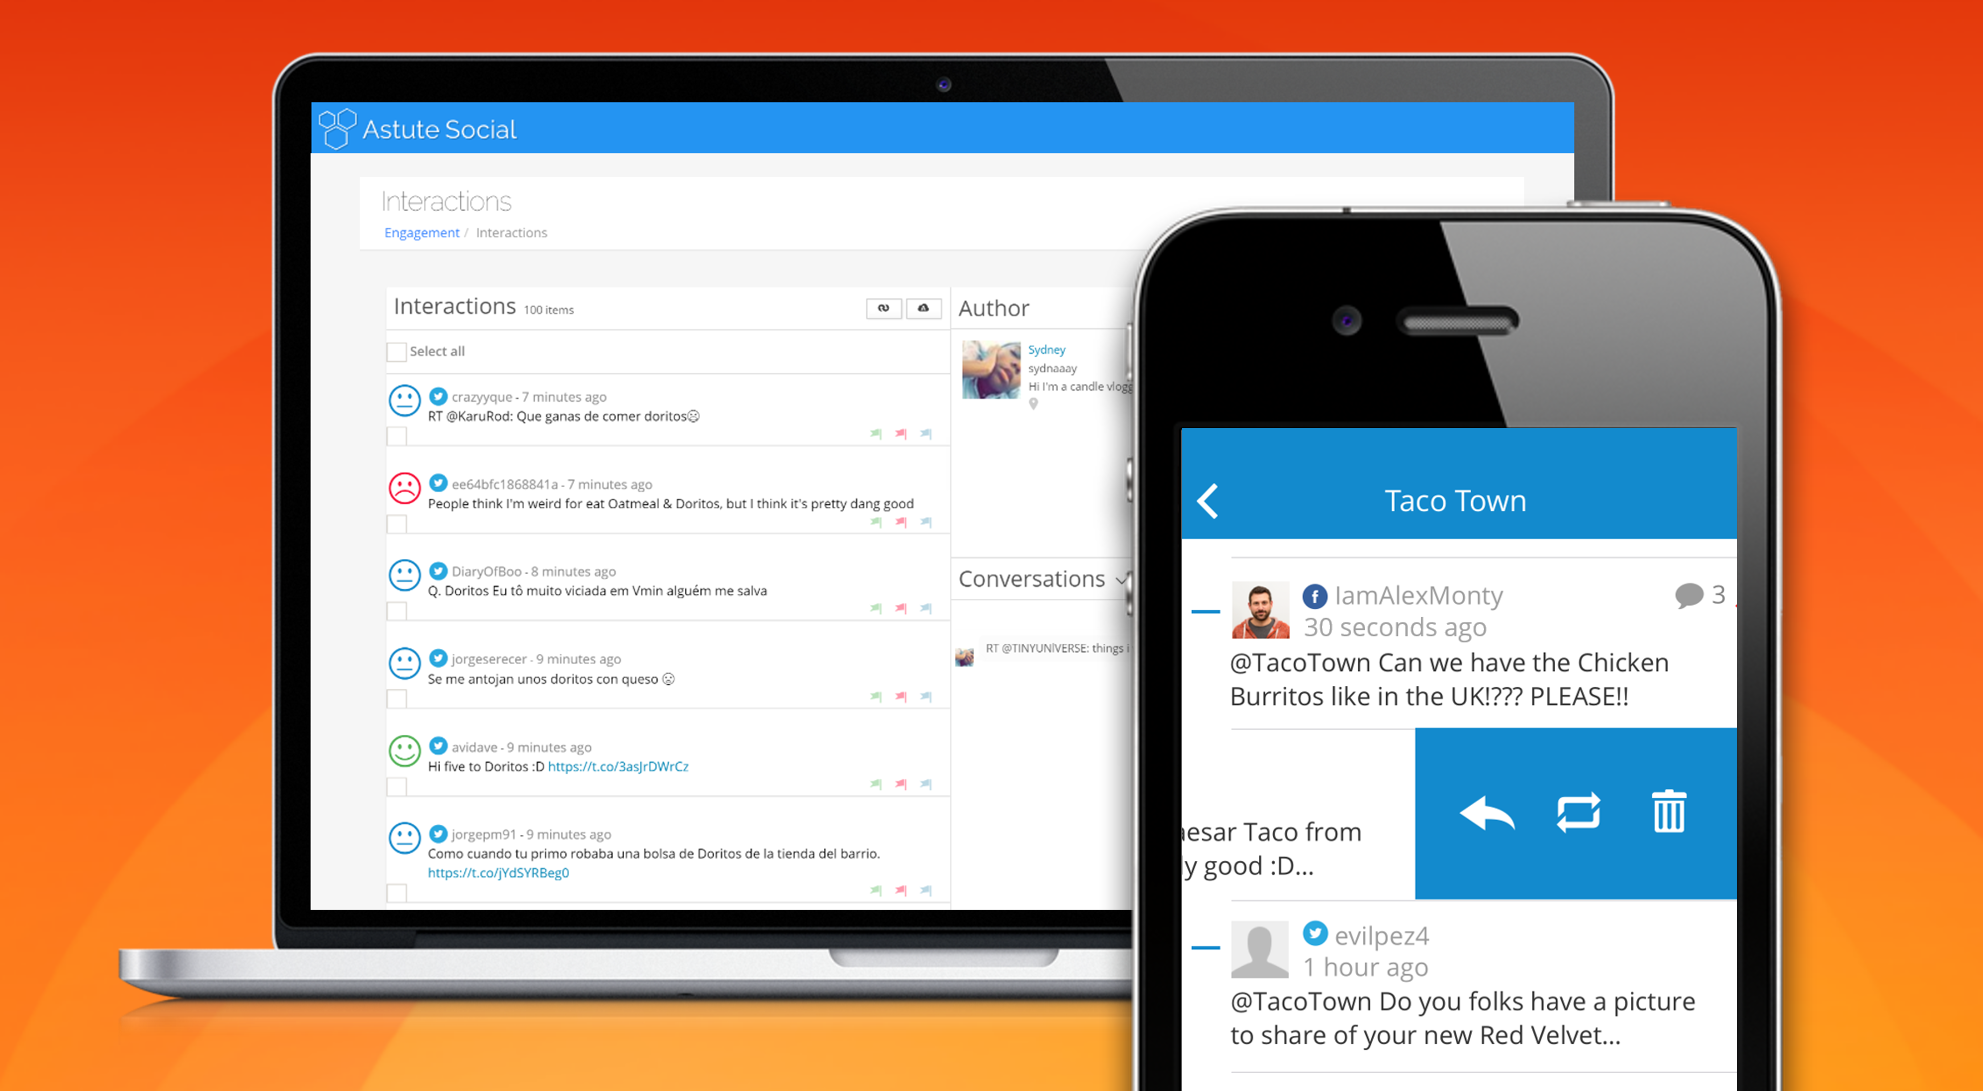 Astute Social™ mobile app enables real-time, 24/7/365 monitoring and engagement